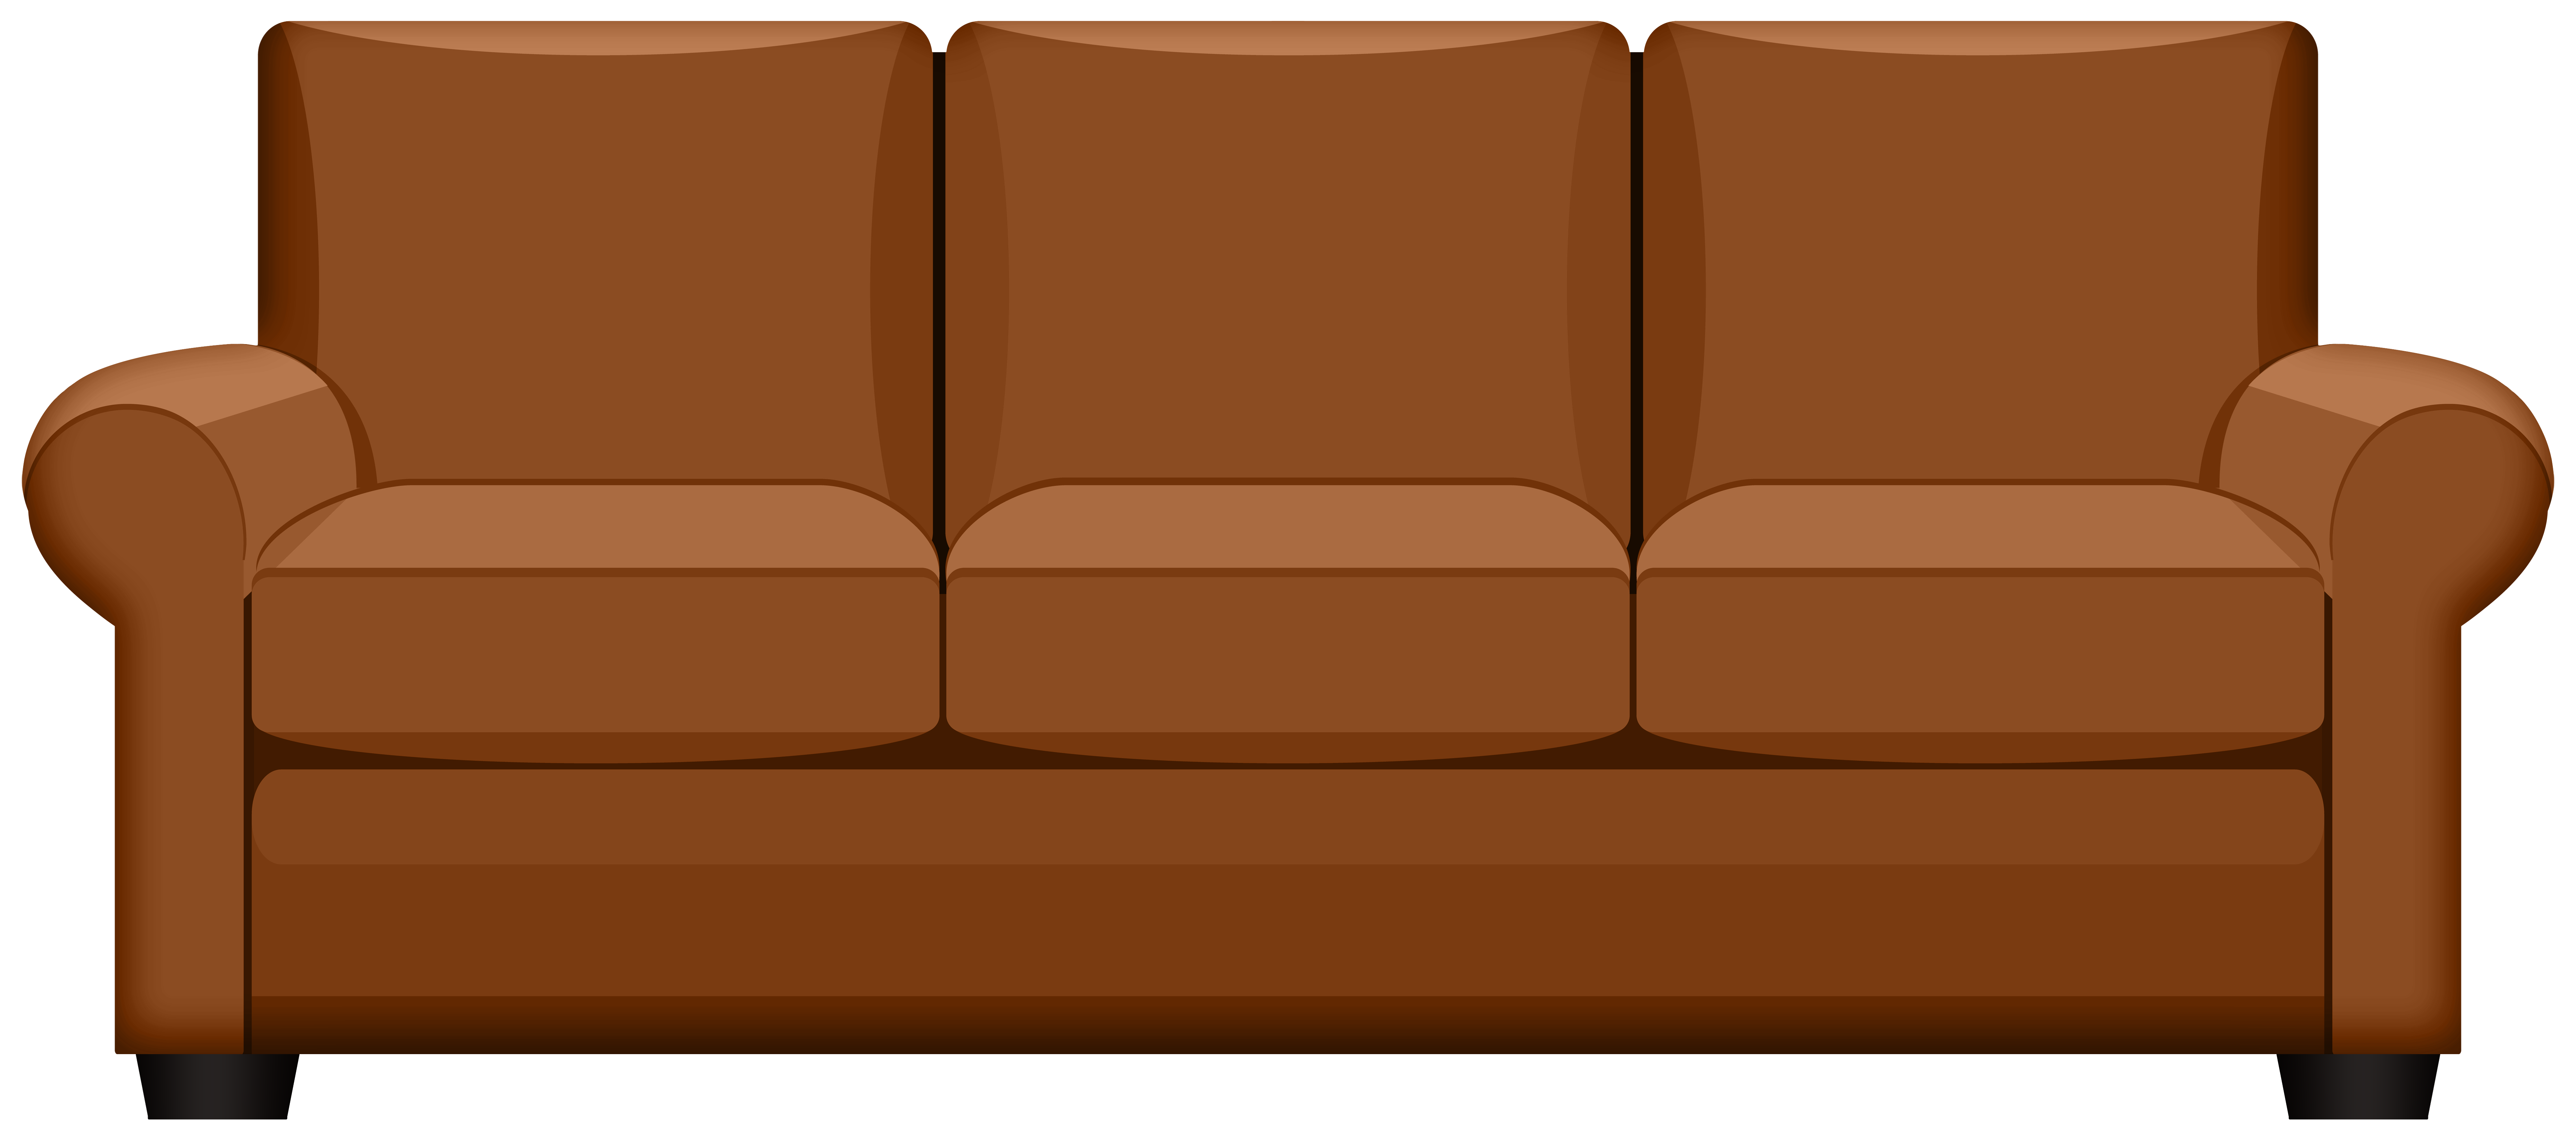 Couch clipart beige. Brown sofa png gallery